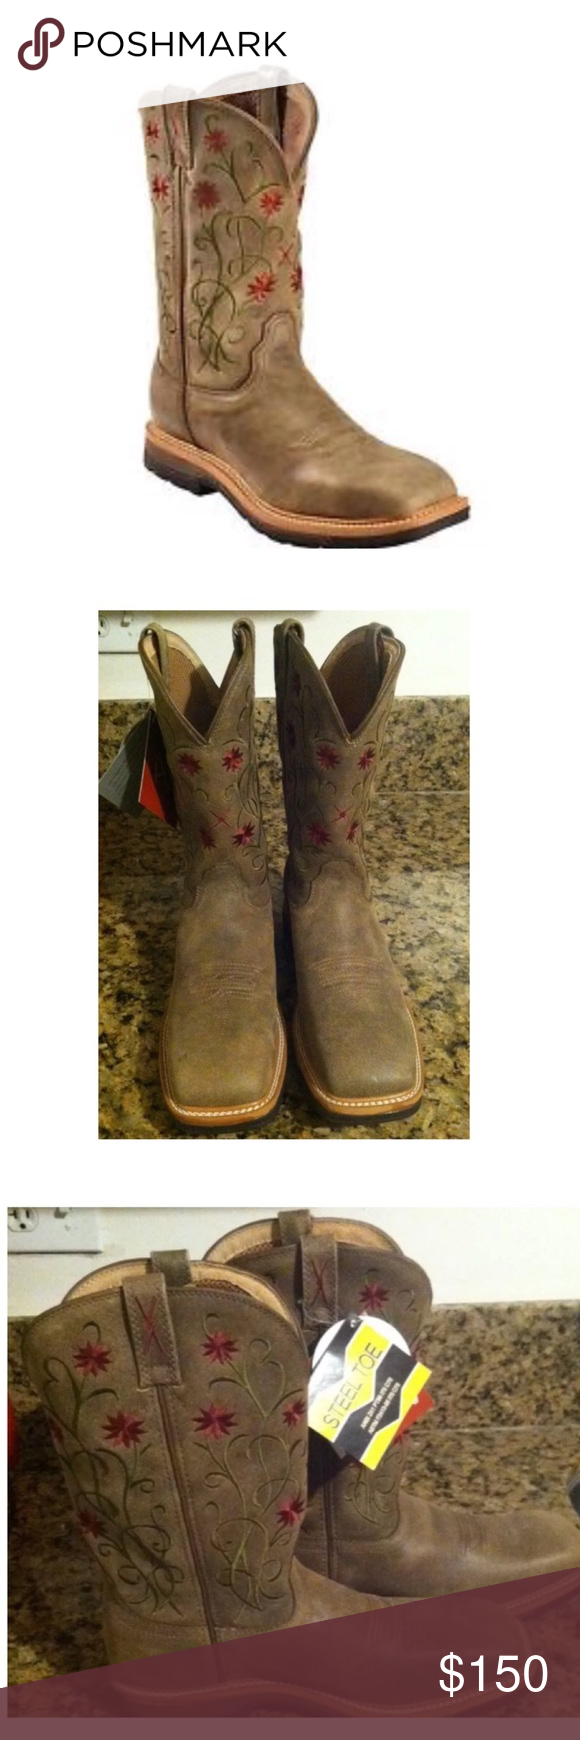 649811ef1fd TWISTED X!!! LADIES COWGIRL BOOTS TWISTED X!!! LADIES COWGIRL BOOTS ...